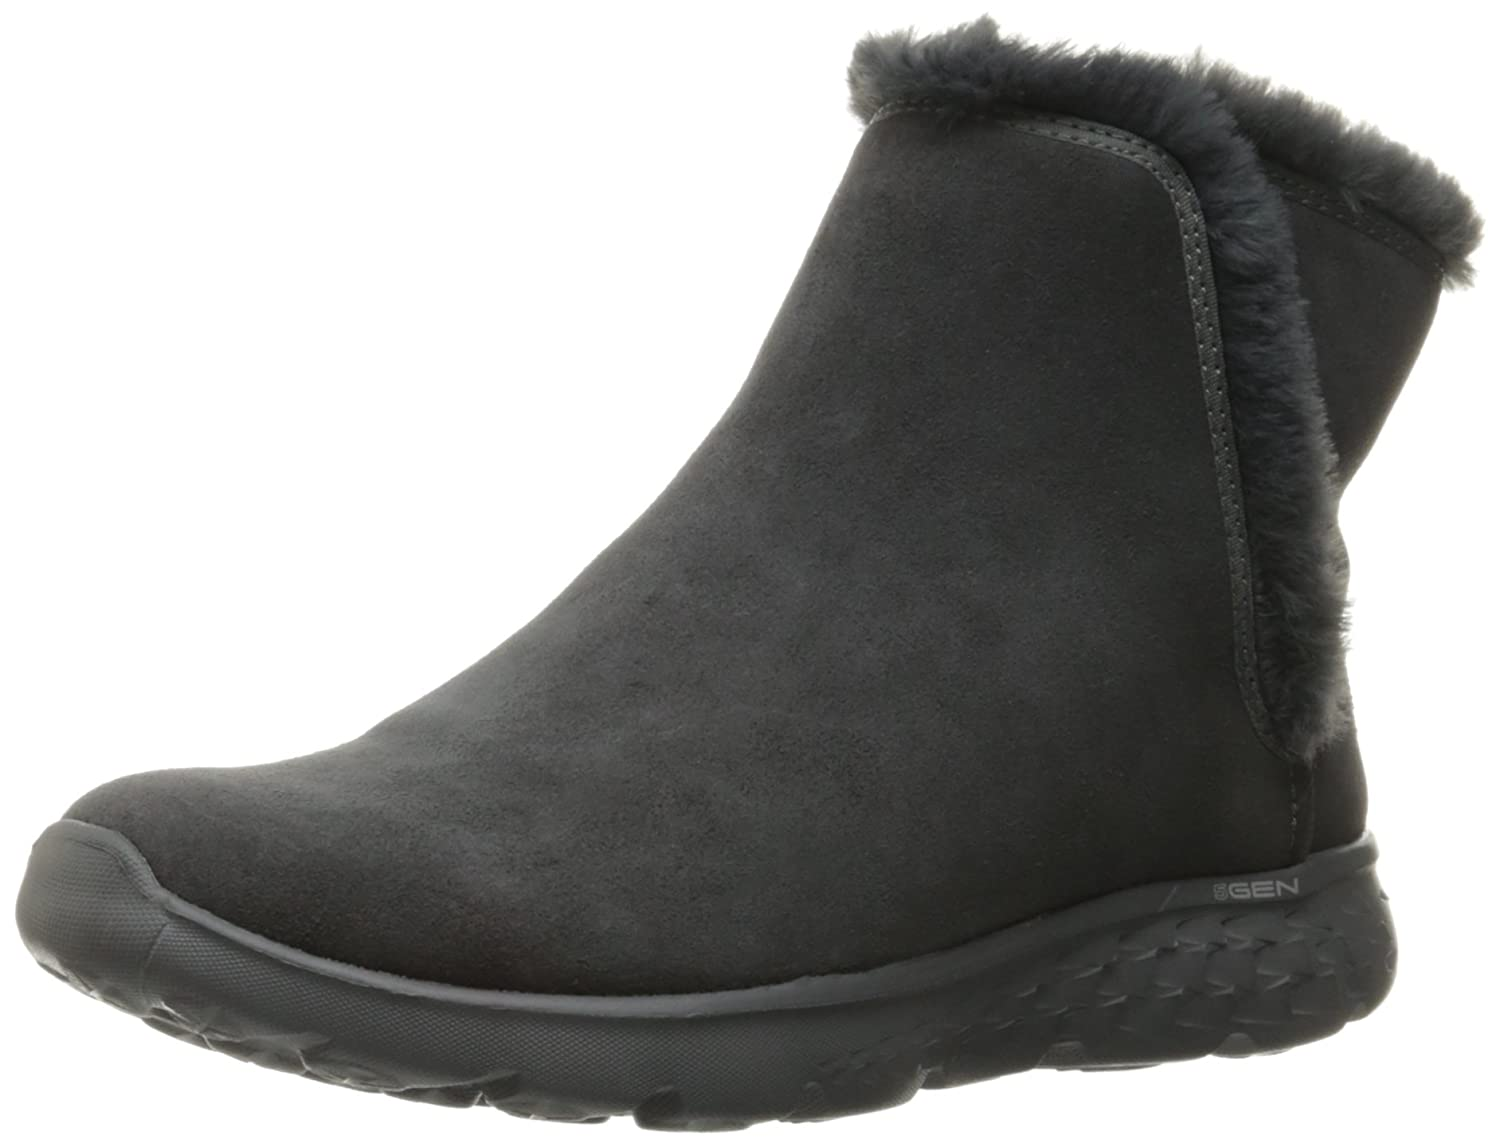 Skechers Performance Women's On The Go 400 Blaze Winter Boot B01KKL3JUG 8 B(M) US|Charcoal